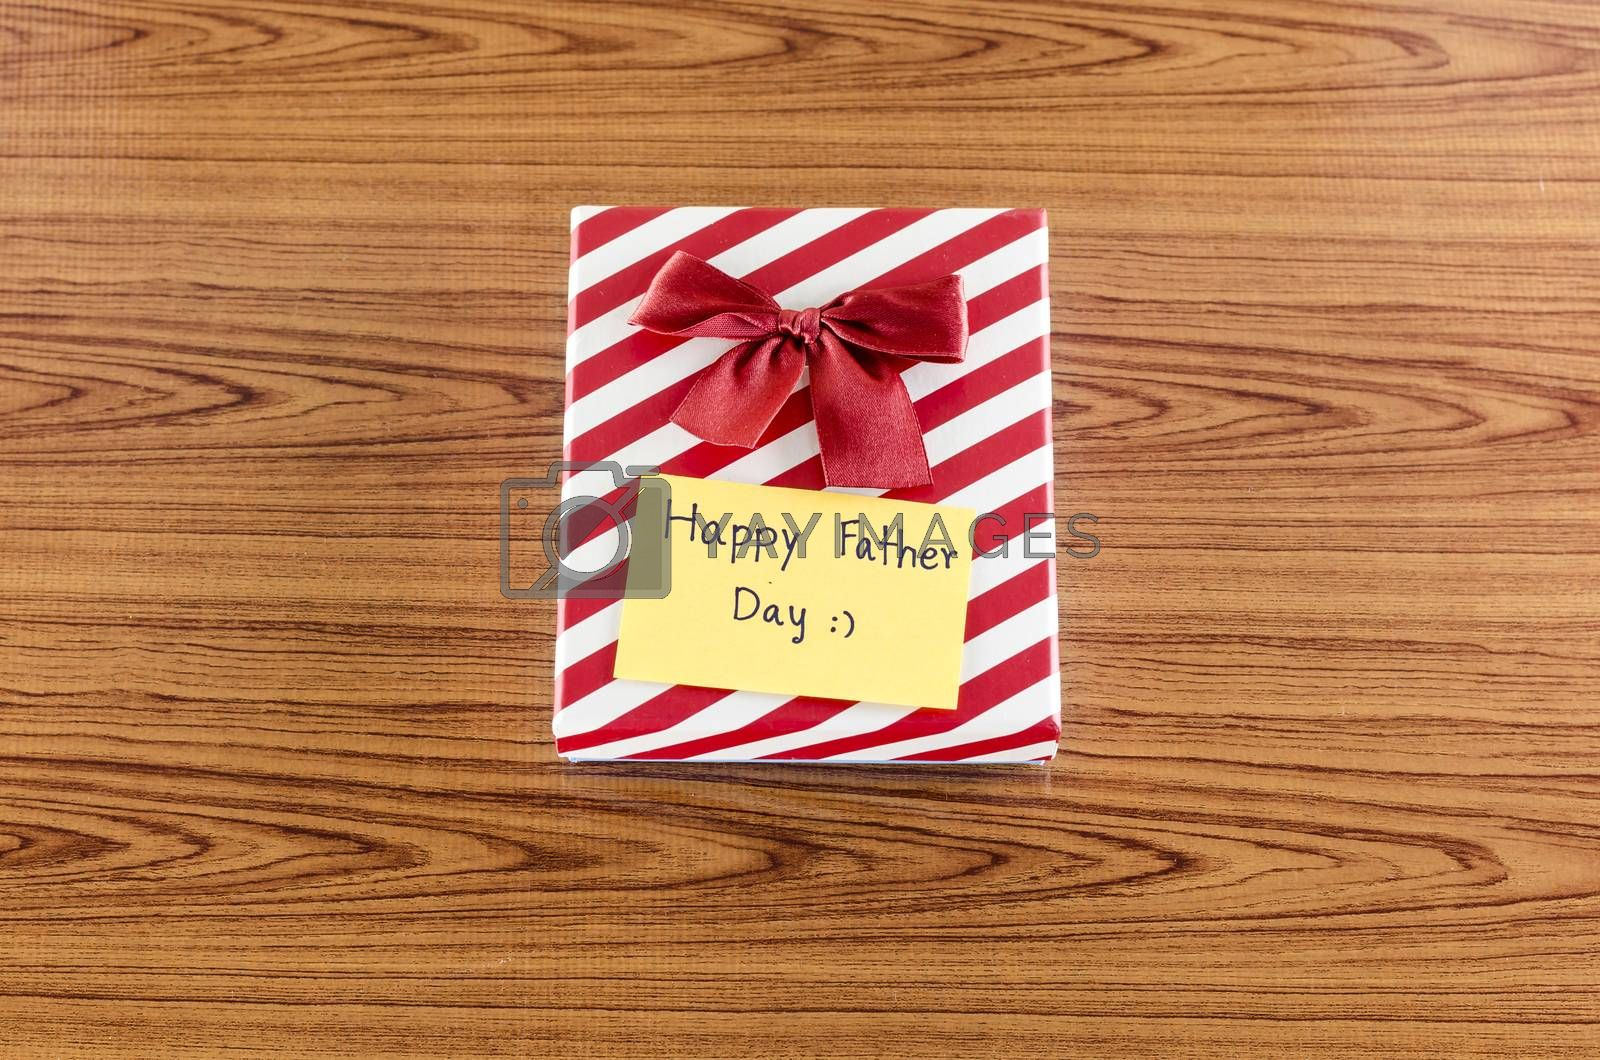 Royalty free image of gift box with card write happy father day by ammza12